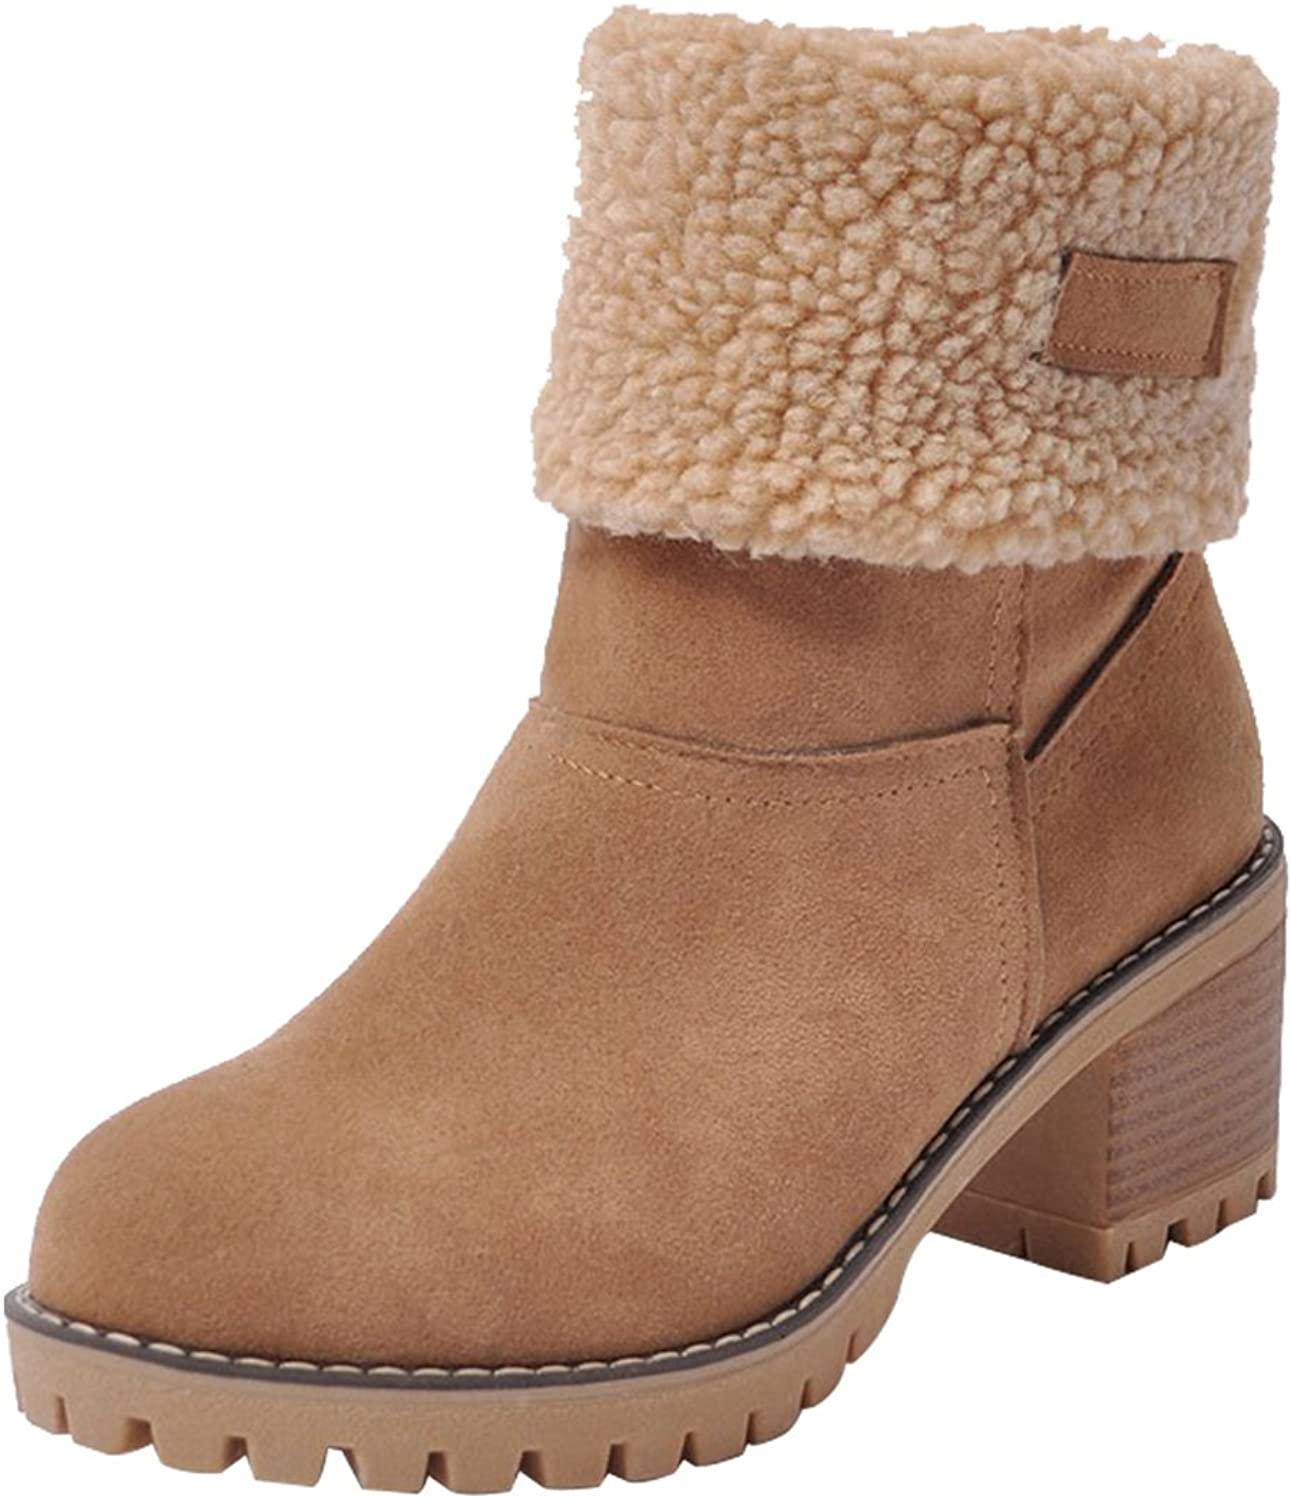 MORNISN Womens Winter Snow Boots Round Toe Suede Chunky mid Heel Faux Fur Warm Ankle Booties